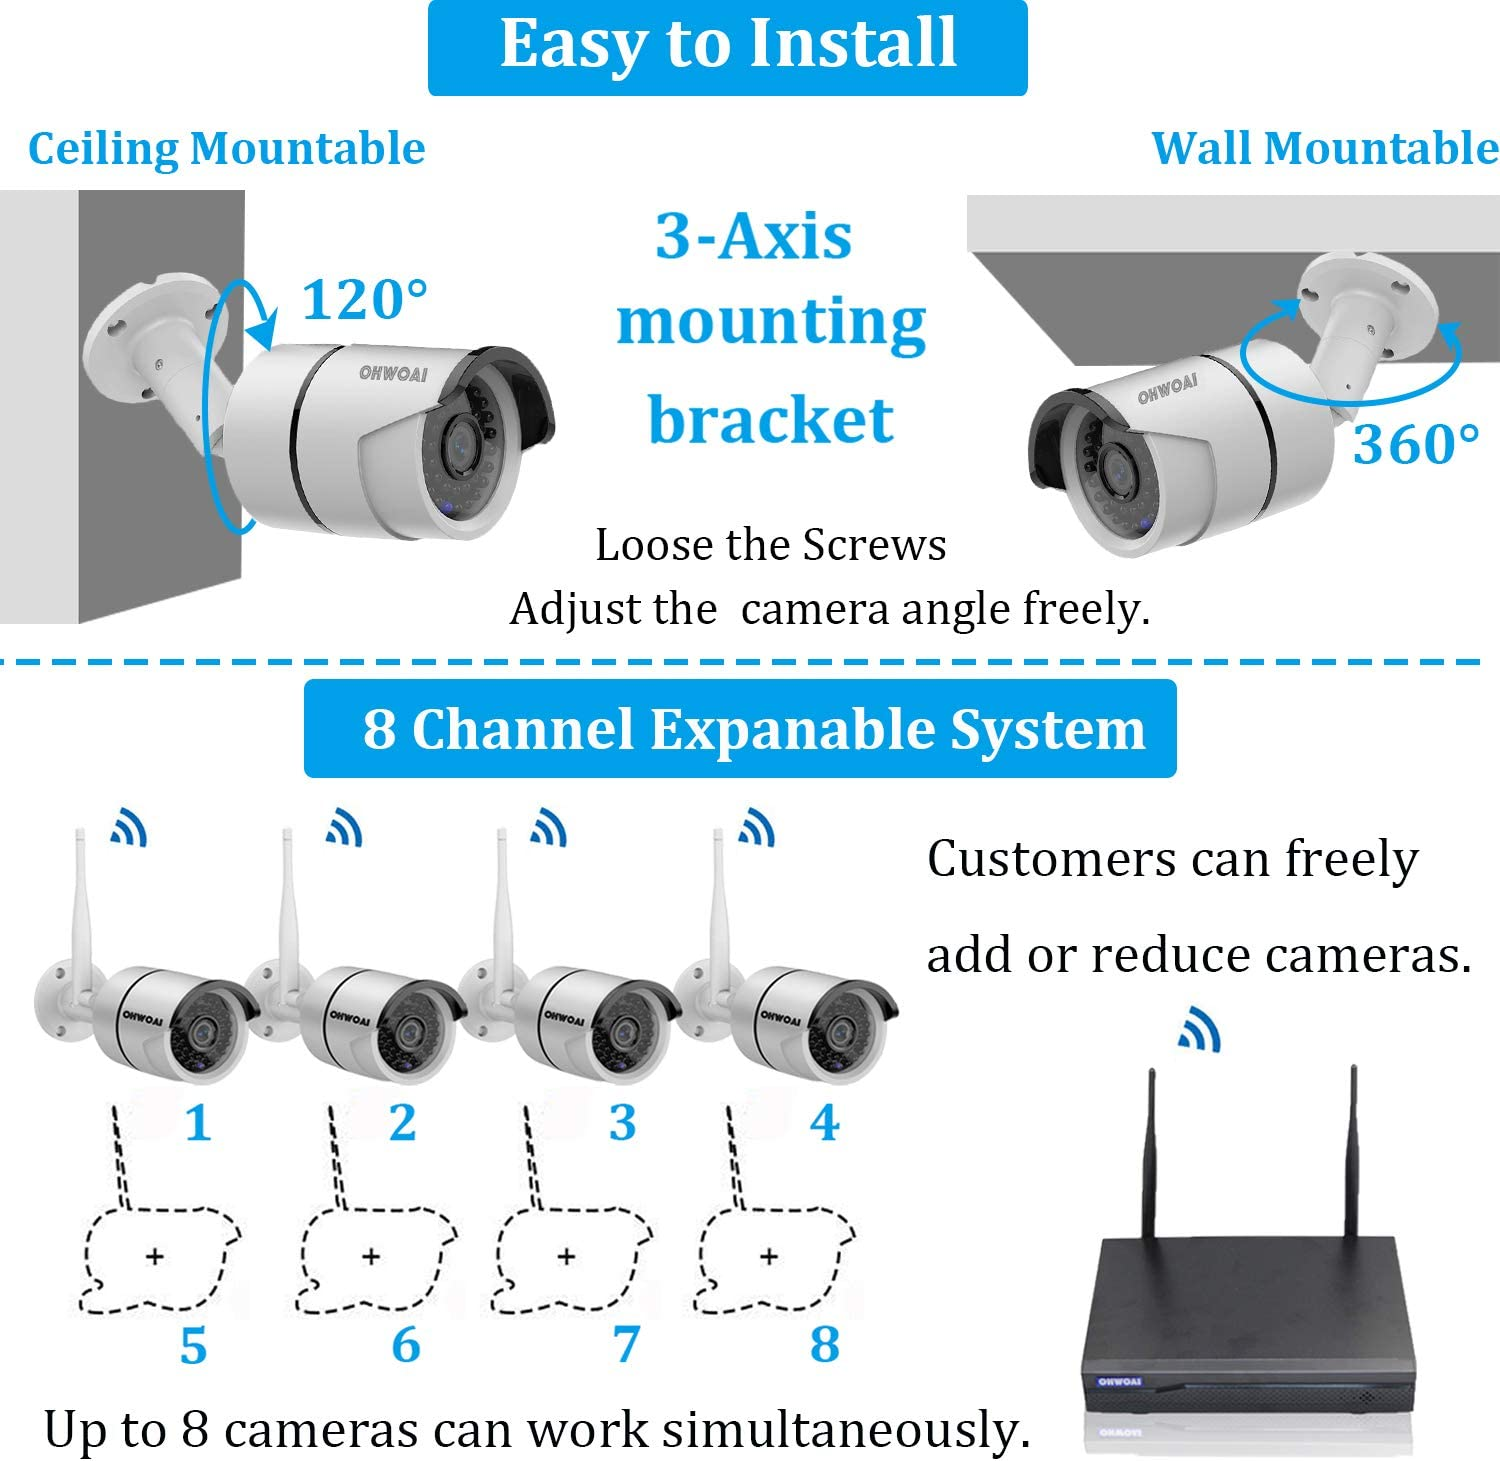 2019 New 8CH Expandable OHWOAI Security Camera System Wireless, 8CH 1080P NVR, 4Pcs 960P HD Outdoor Indoor IP Cameras,Home CCTV Surveillance System No Hard Drive Waterproof,Remote Access,Plug Play,